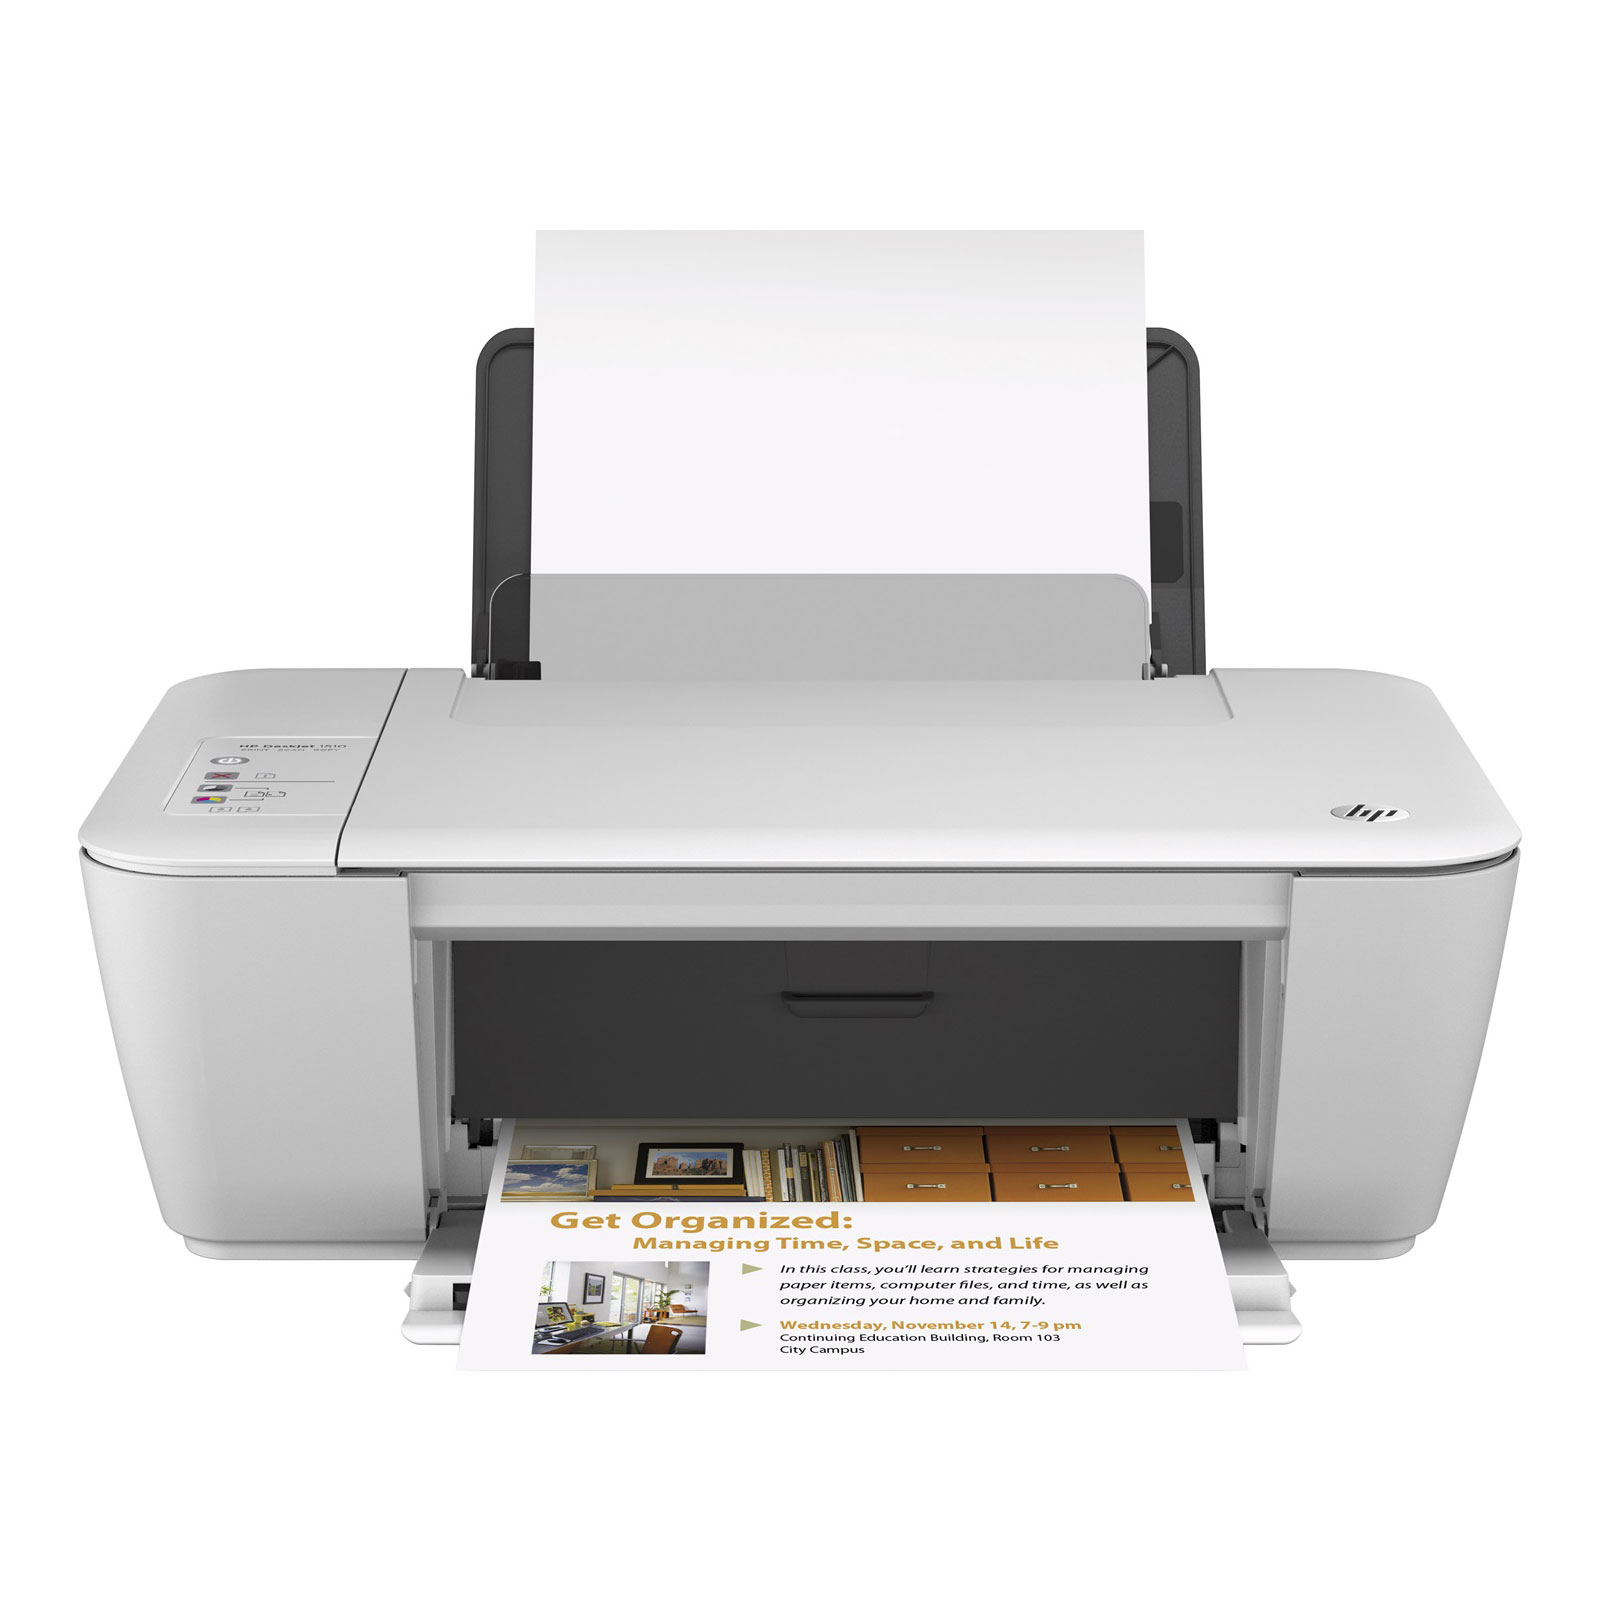 hp deskjet 1510 aio imprimante multifonction hp sur ldlc. Black Bedroom Furniture Sets. Home Design Ideas